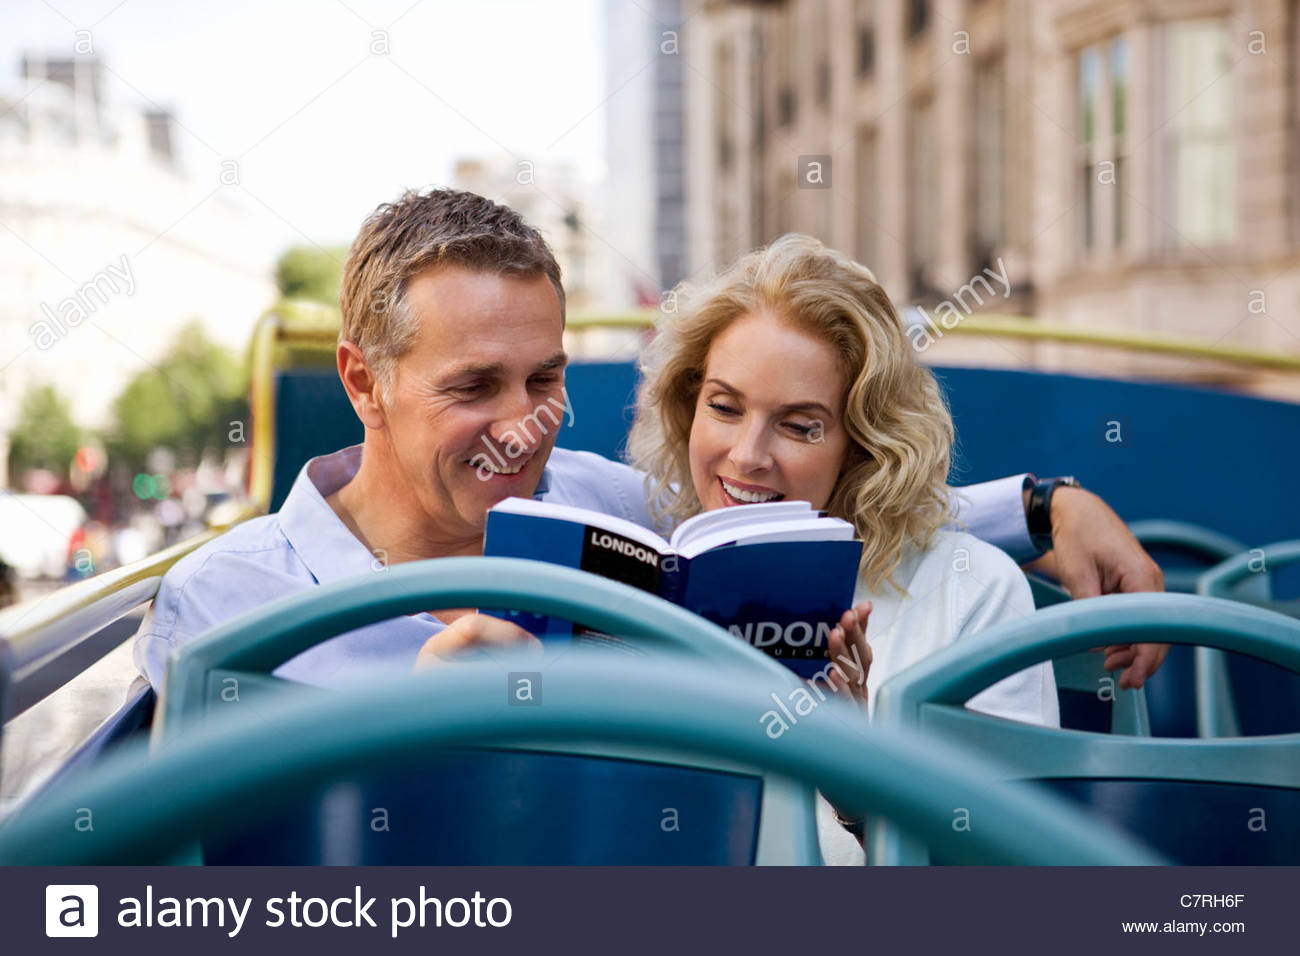 A middle-aged couple sitting on a sightseeing bus, looking at a guidebook - Stock Image